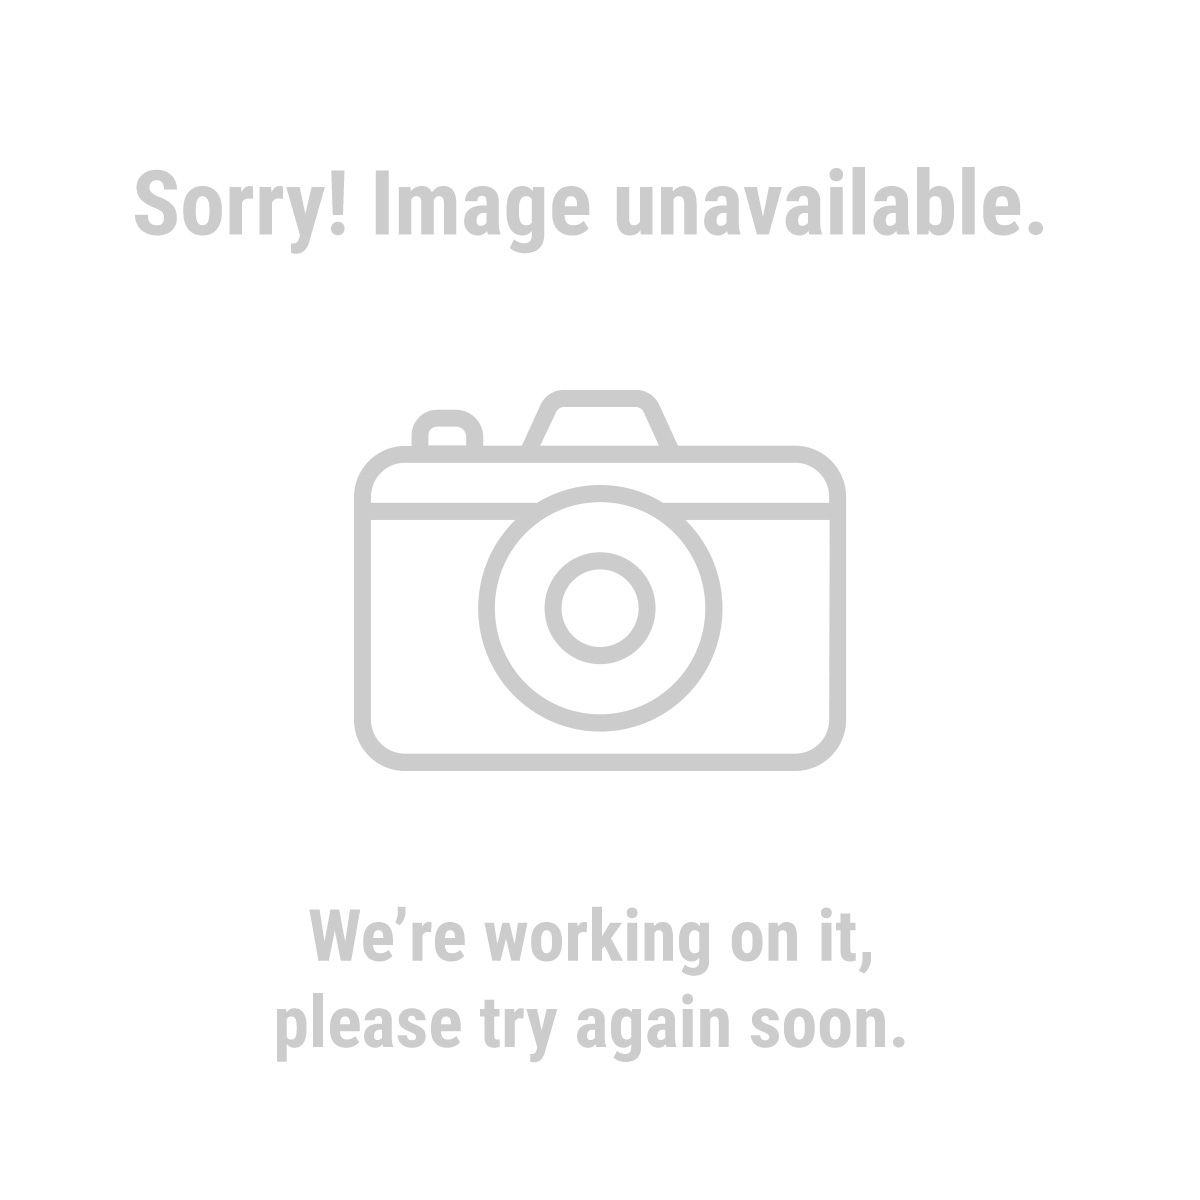 Haul-Master® 61678 3/8 in. x 100 ft. Diamond Braid Rope